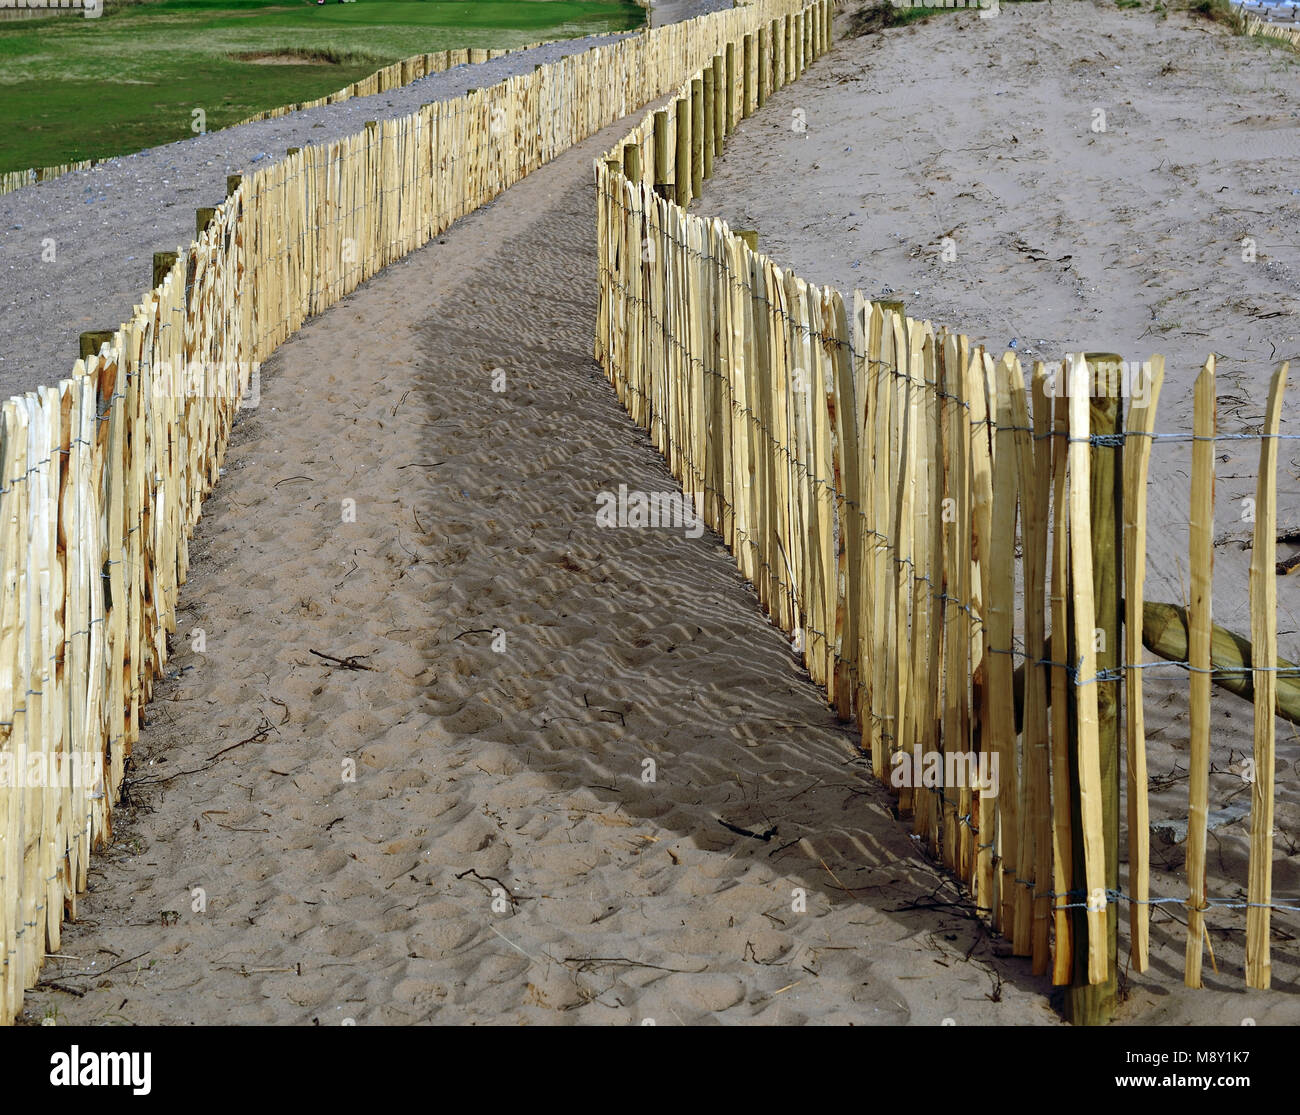 Fencing on sand dunes at Dawlish Warren nature reserve. - Stock Image